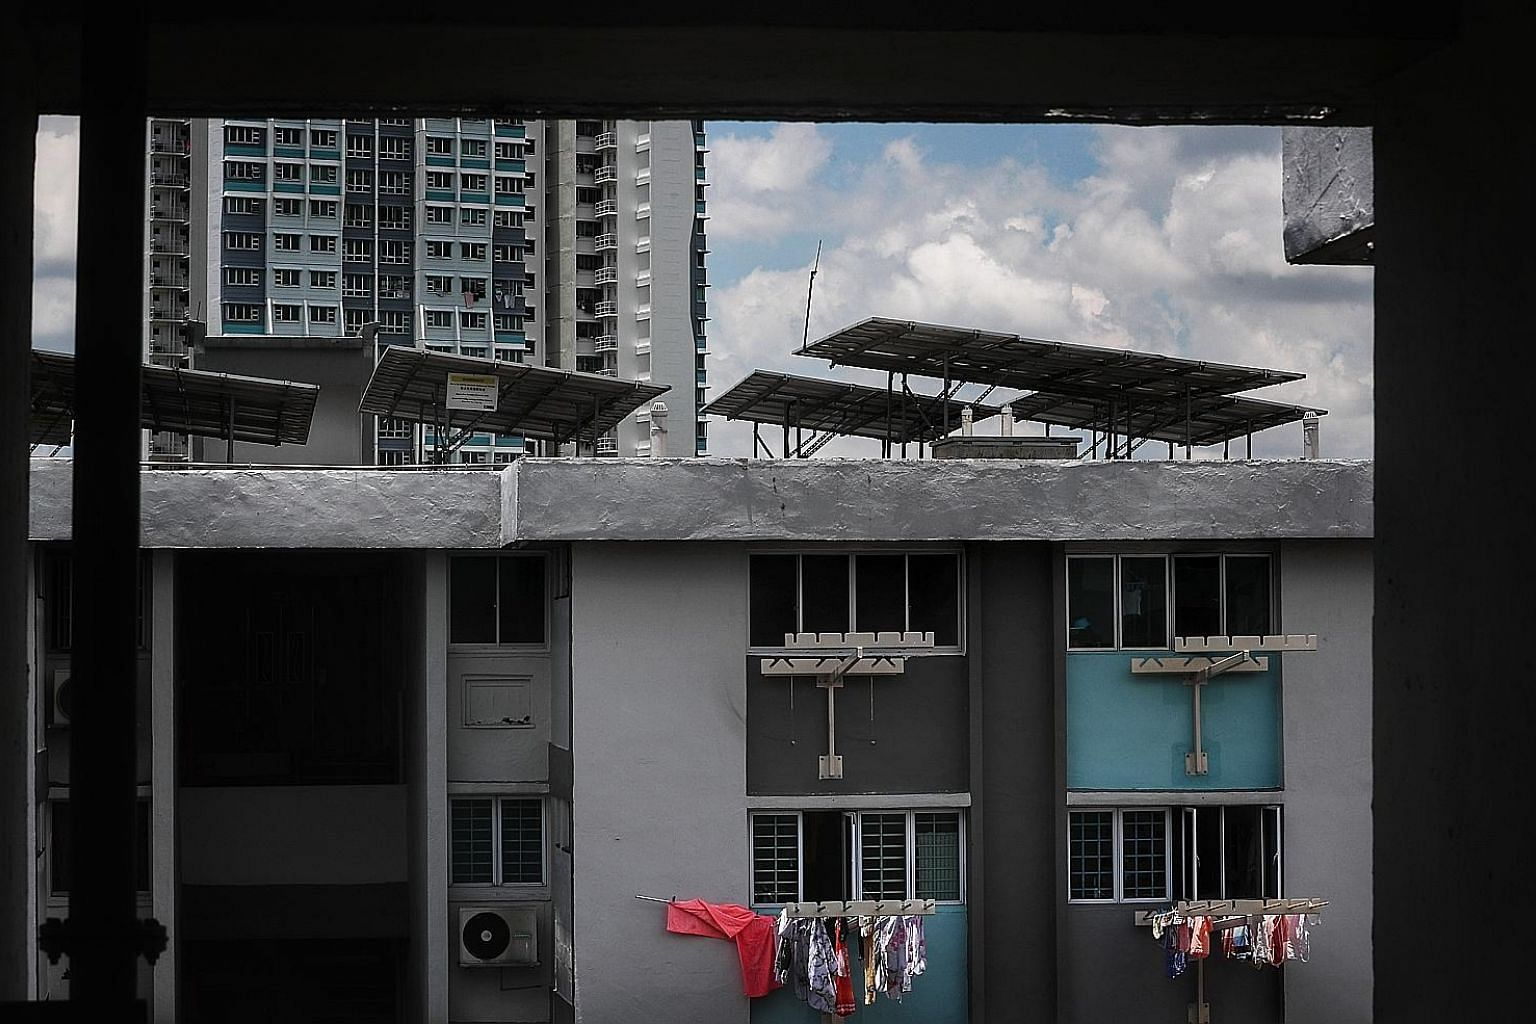 Solar panels on the rooftops of Housing Board blocks in Ang Mo Kio. The Government's green vision includes dramatically increasing solar energy generation and electric vehicle use, reducing household waste, making buildings much more energy-efficient